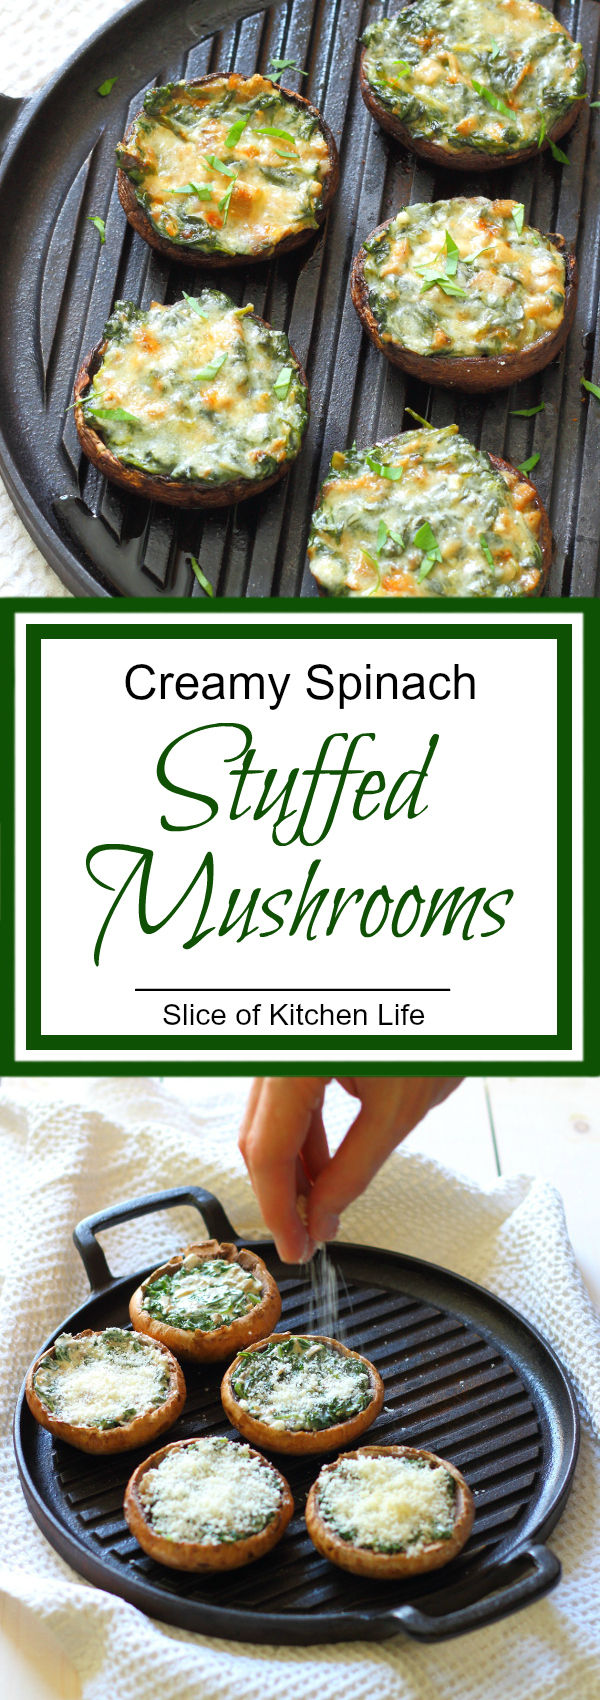 Creamy Spinach Stuffed Mushroom Recipe - Portobello mushrooms stuffed with creamy garlic spinach, then topped with grated parmesan - the perfect summer lunch! | sliceofkitchenlife.com